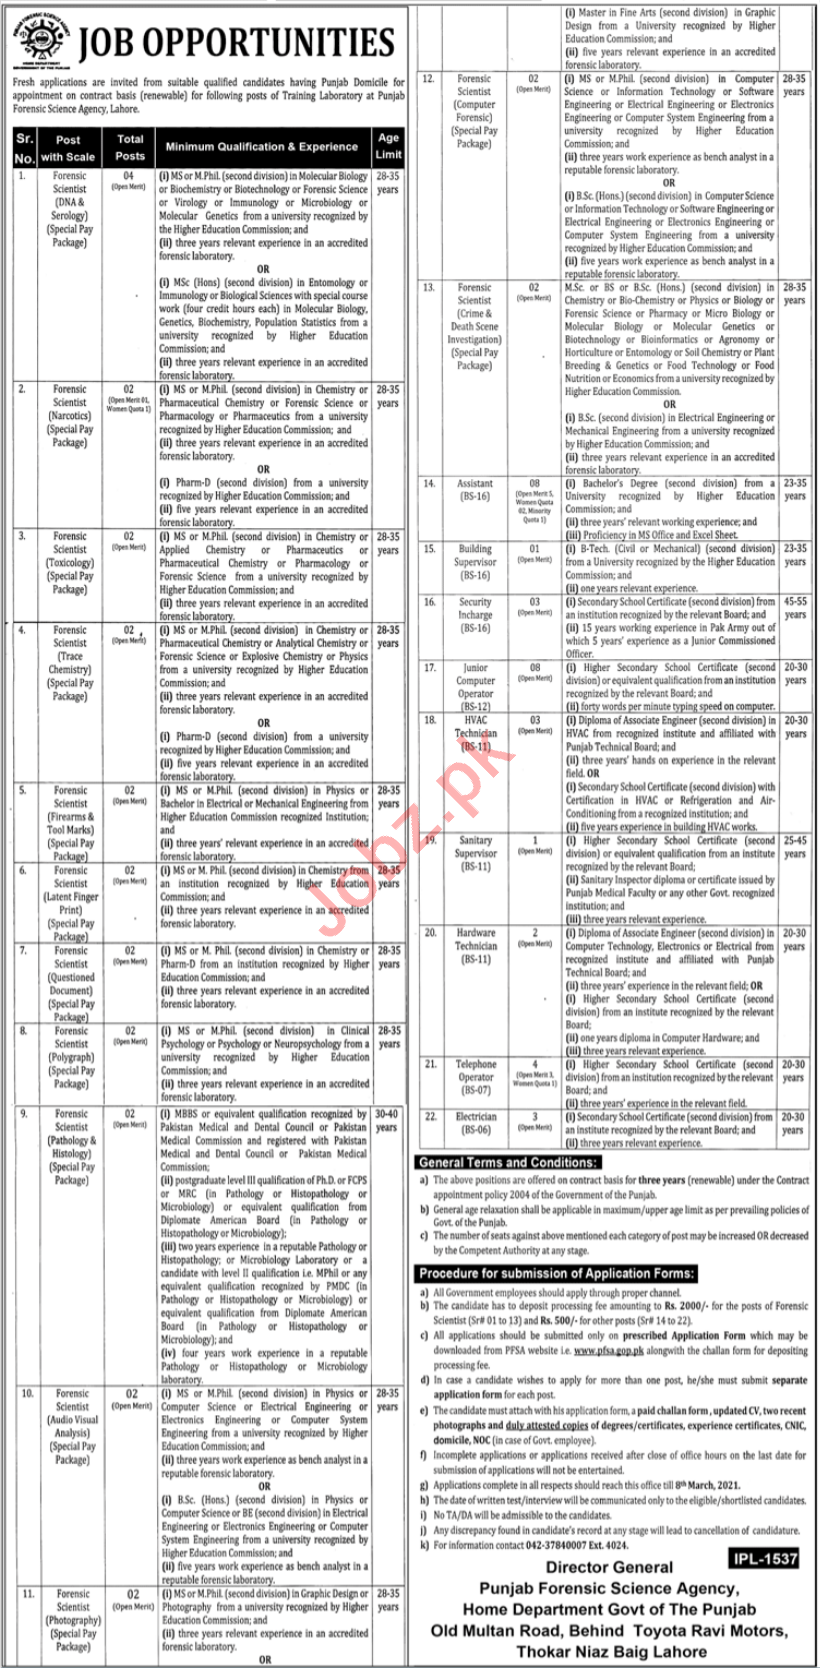 Punjab Forensic Science Agency PFSA Lahore Jobs 2021